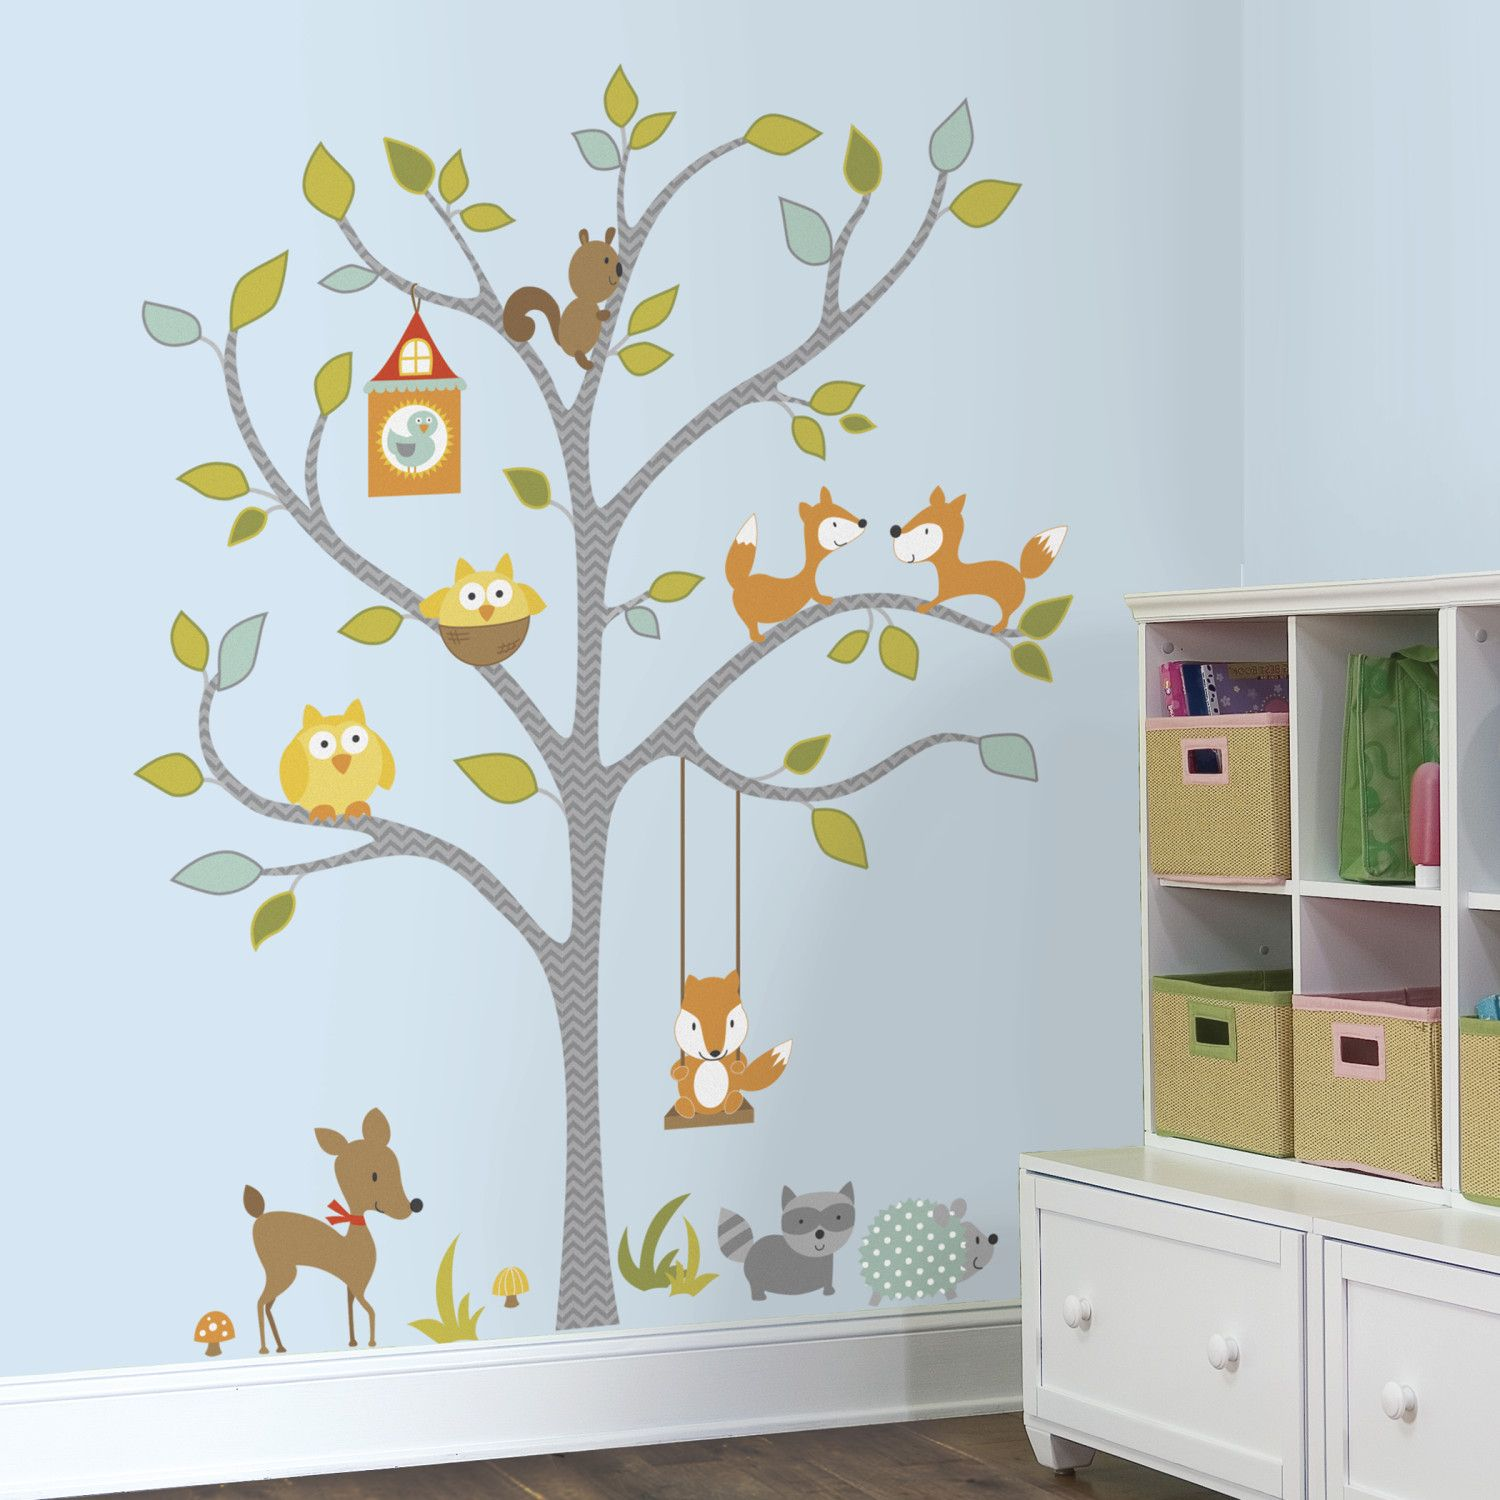 Room Mates Woodland Fox And Friends Tree Wall Decal Church - Wall decals for church nursery